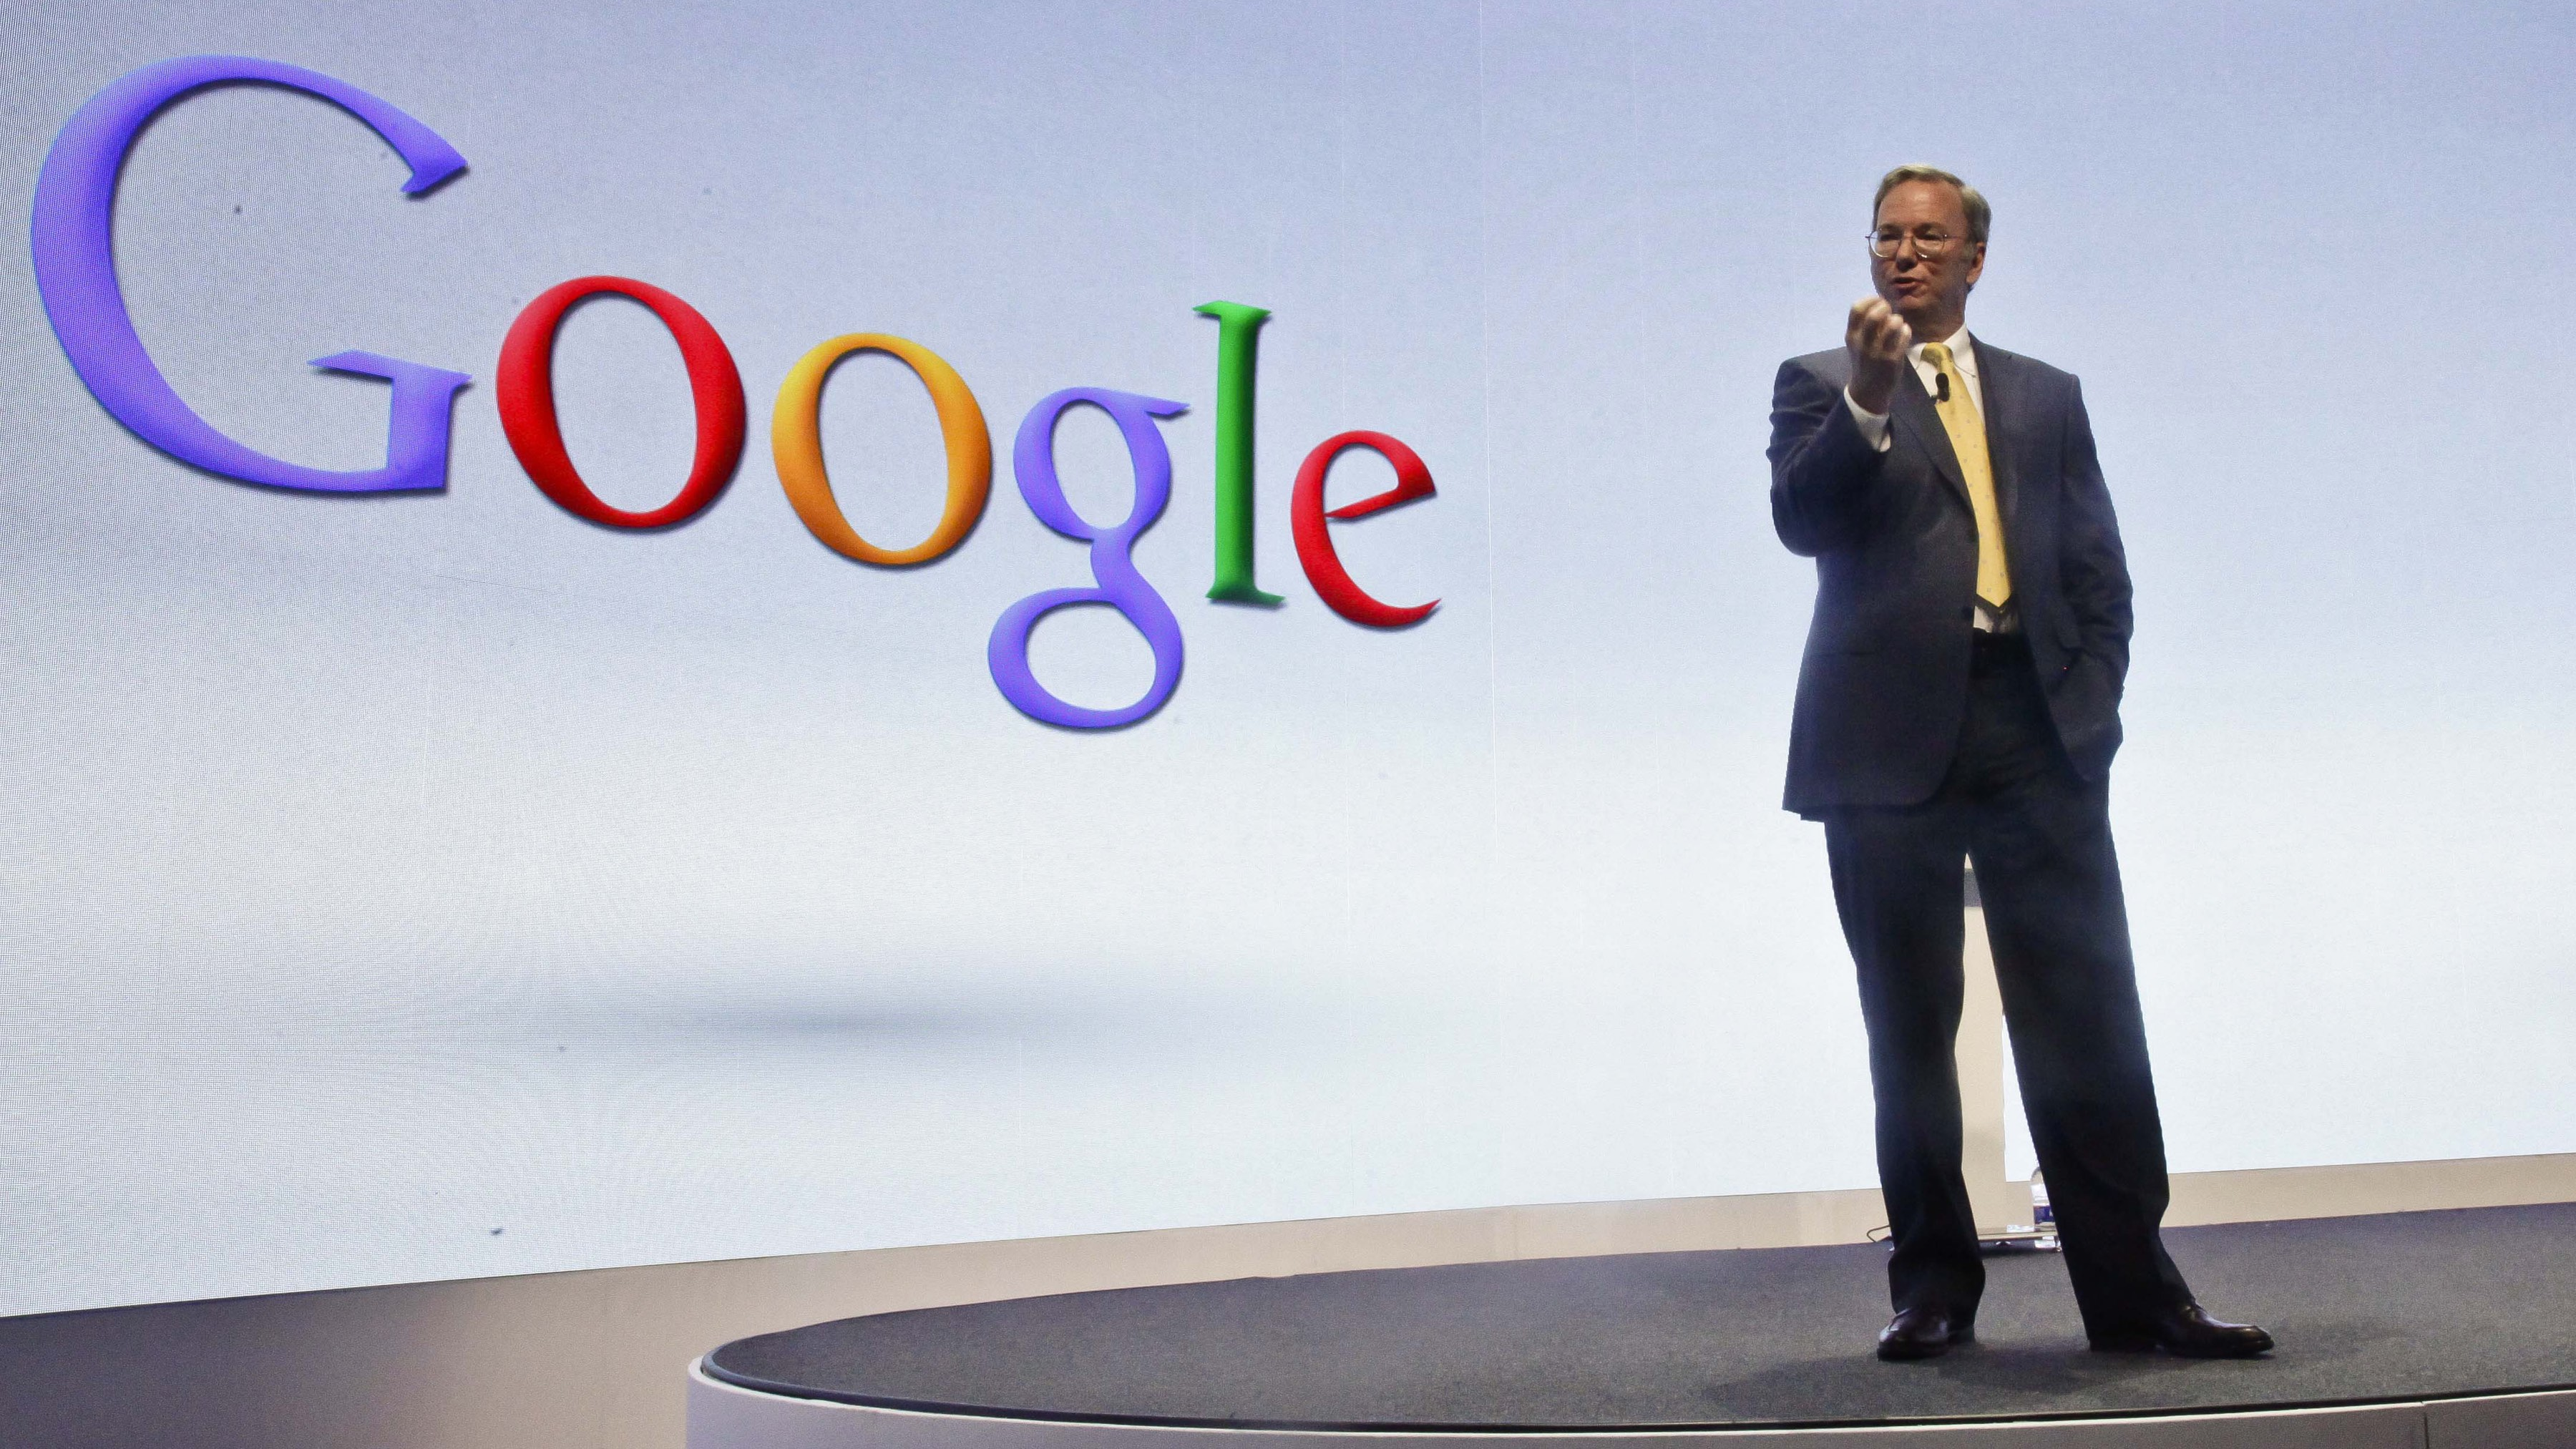 In this Wednesday, Sept. 5, 2012, file photo, Eric Schmidt, Google's chairman, speaks during a press conference in New York, where Motorola introduced three new smartphones, the first since it became a a part of Google. Google said Wednesday, Jan. 29, 2014, it is selling Motorola's smartphone business to Lenovo for $2.9 billion, a price that makes Google's biggest acquisition look like its most expensive mistake.(AP Photo/Bebeto Matthews, File)